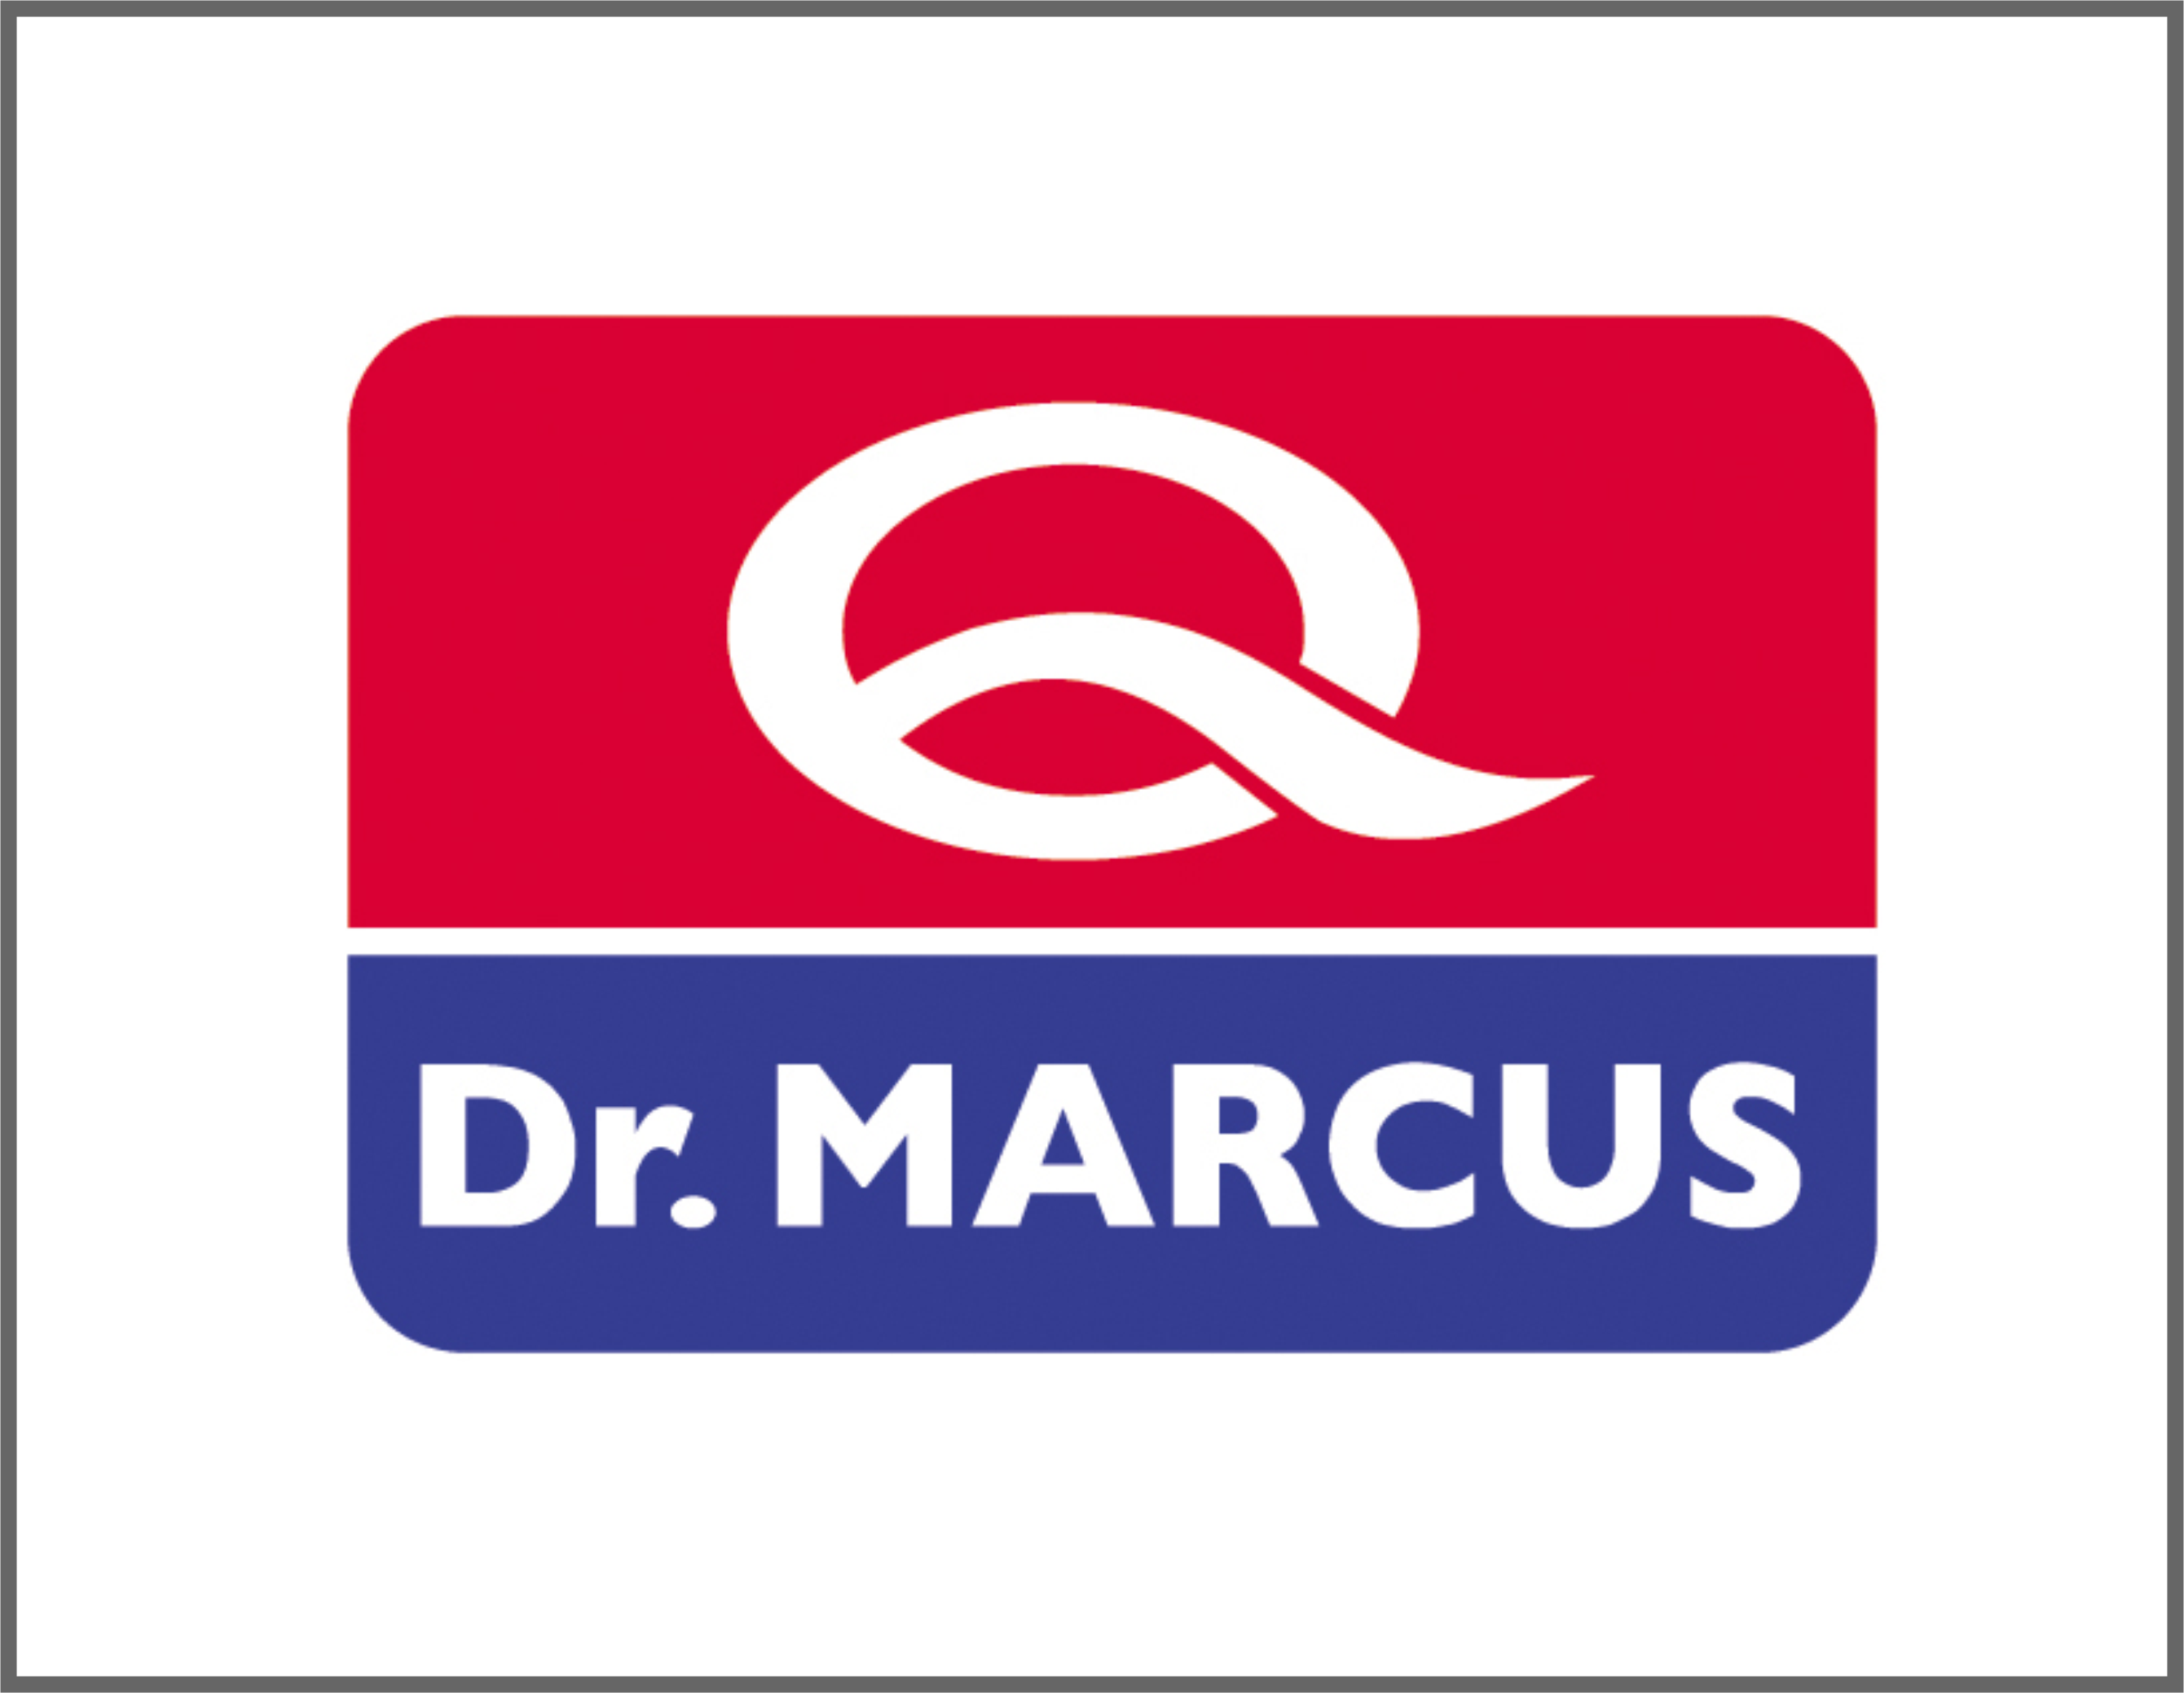 Dr Marcus air fresheners